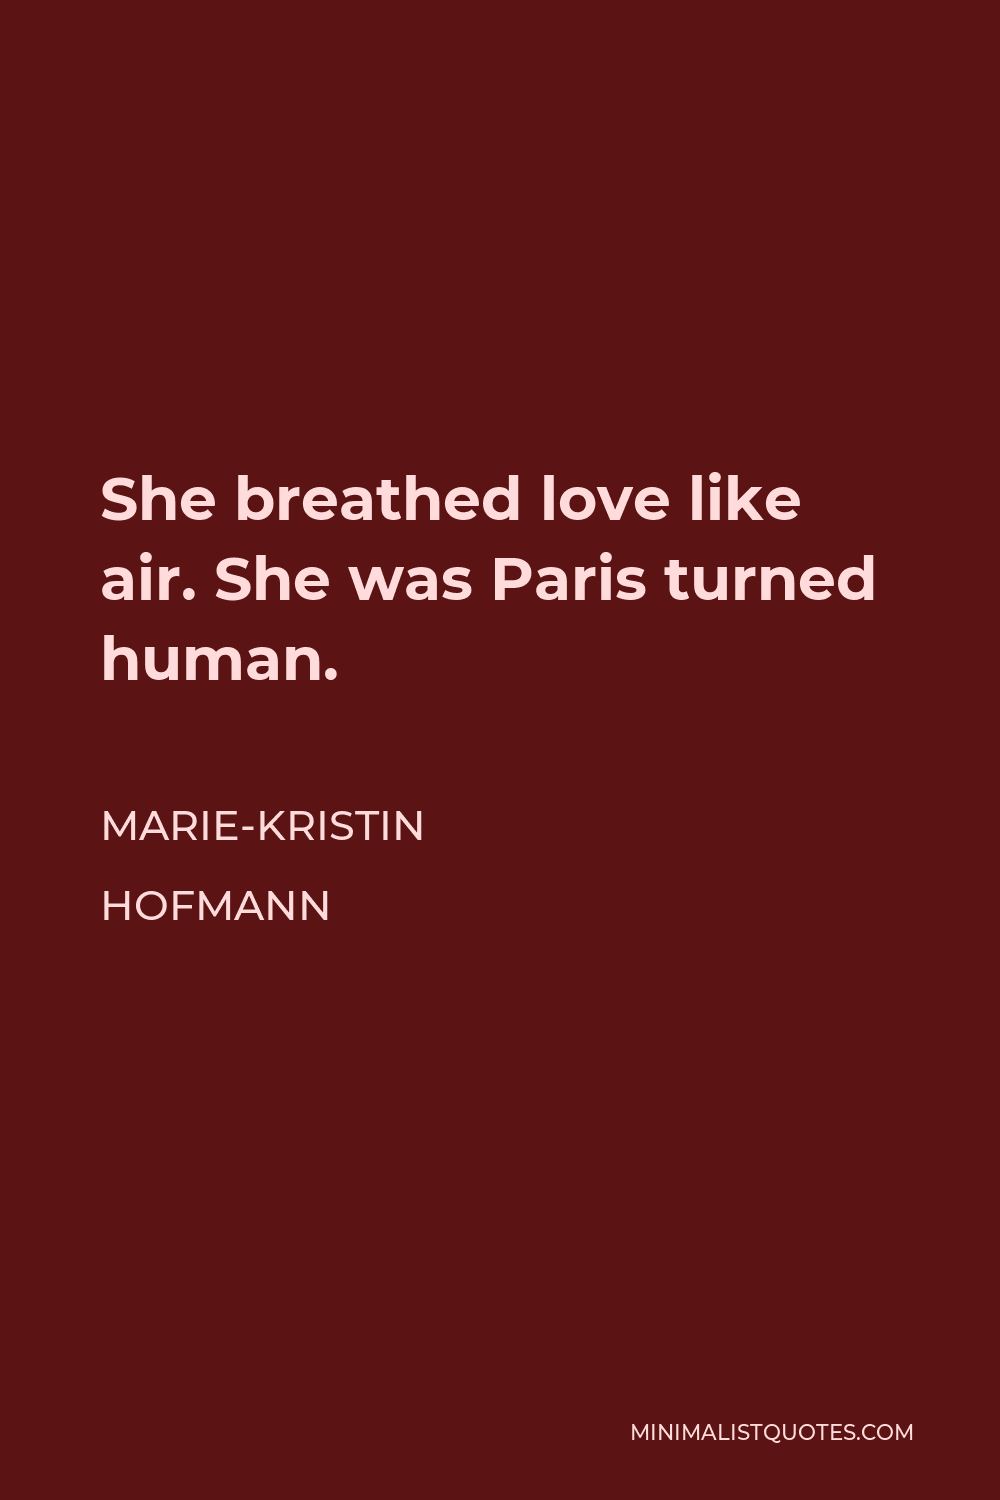 Marie-Kristin Hofmann Quote - She breathed love like air. She was Paris turned human.